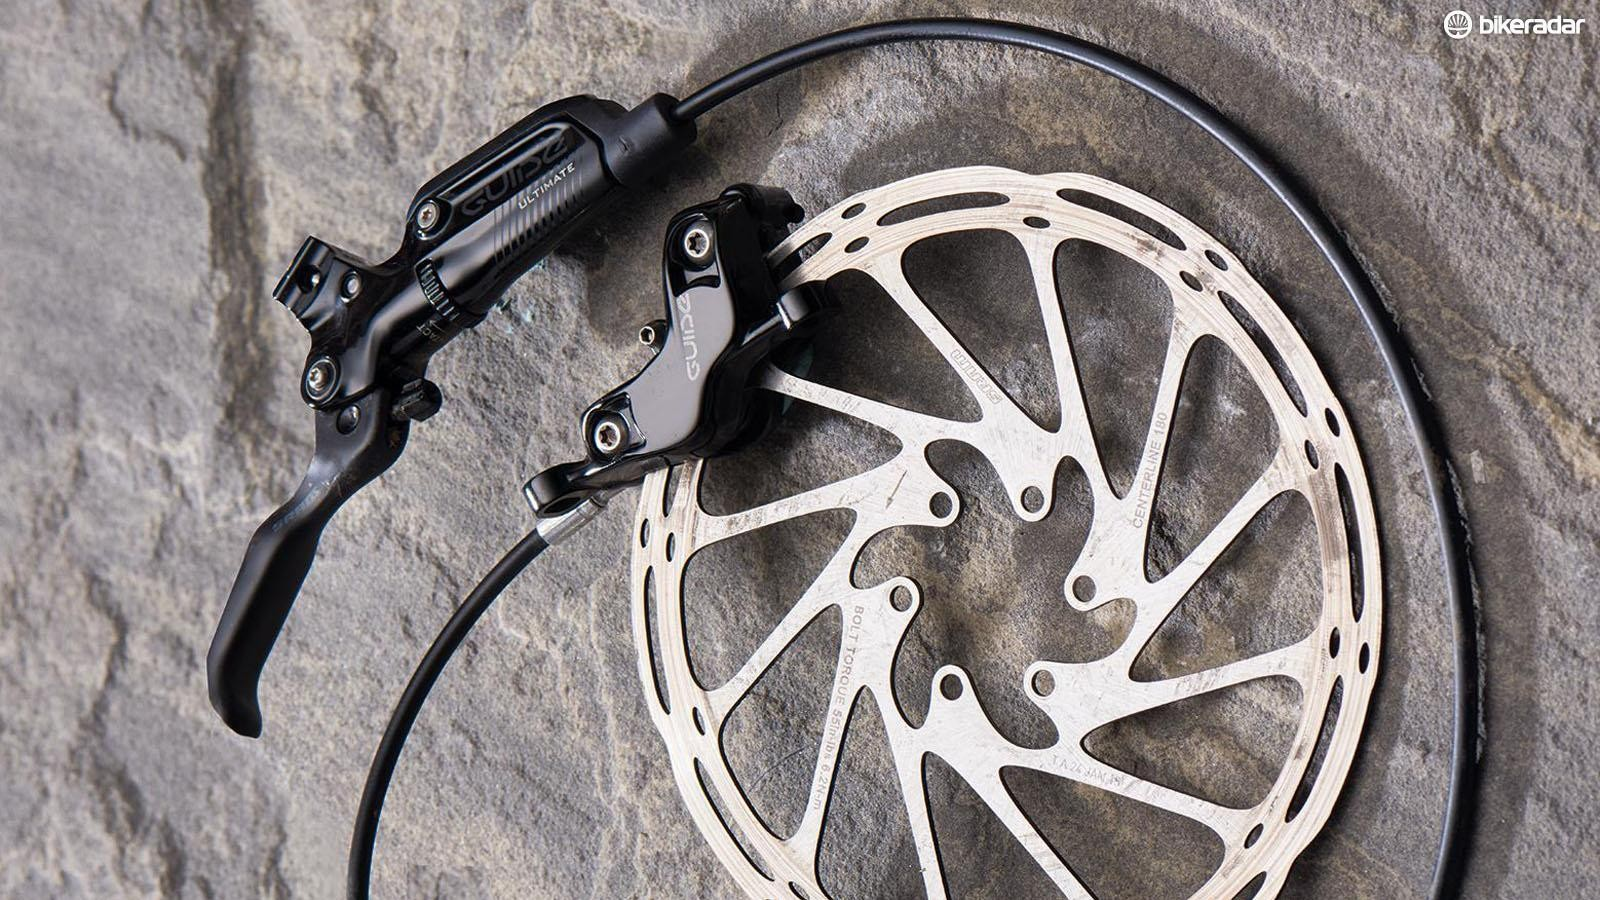 Let's look at the best mountain bike disc brakes on the market, like SRAMS Guide Ultimate